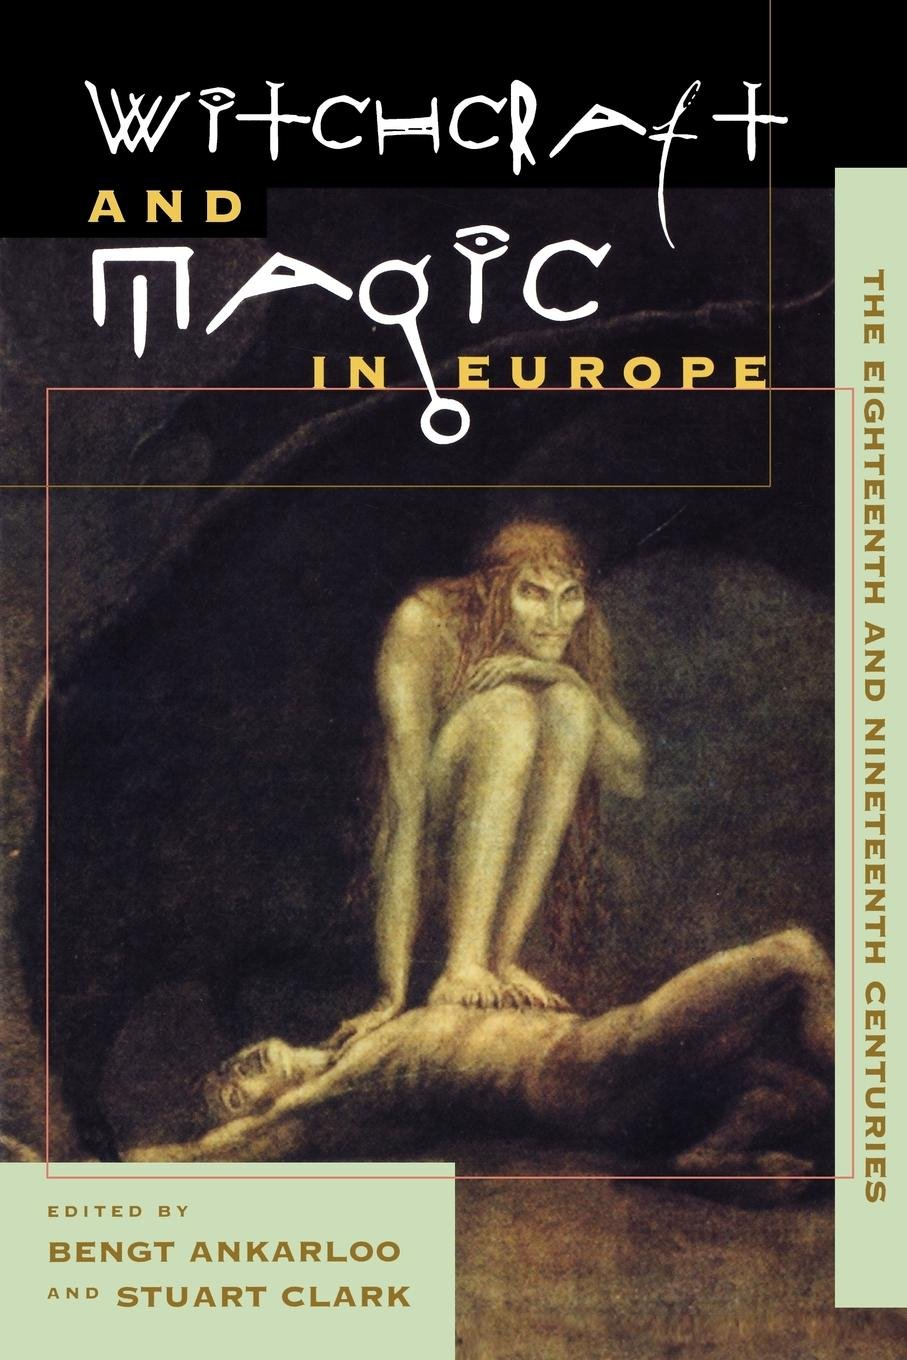 European nude phography books